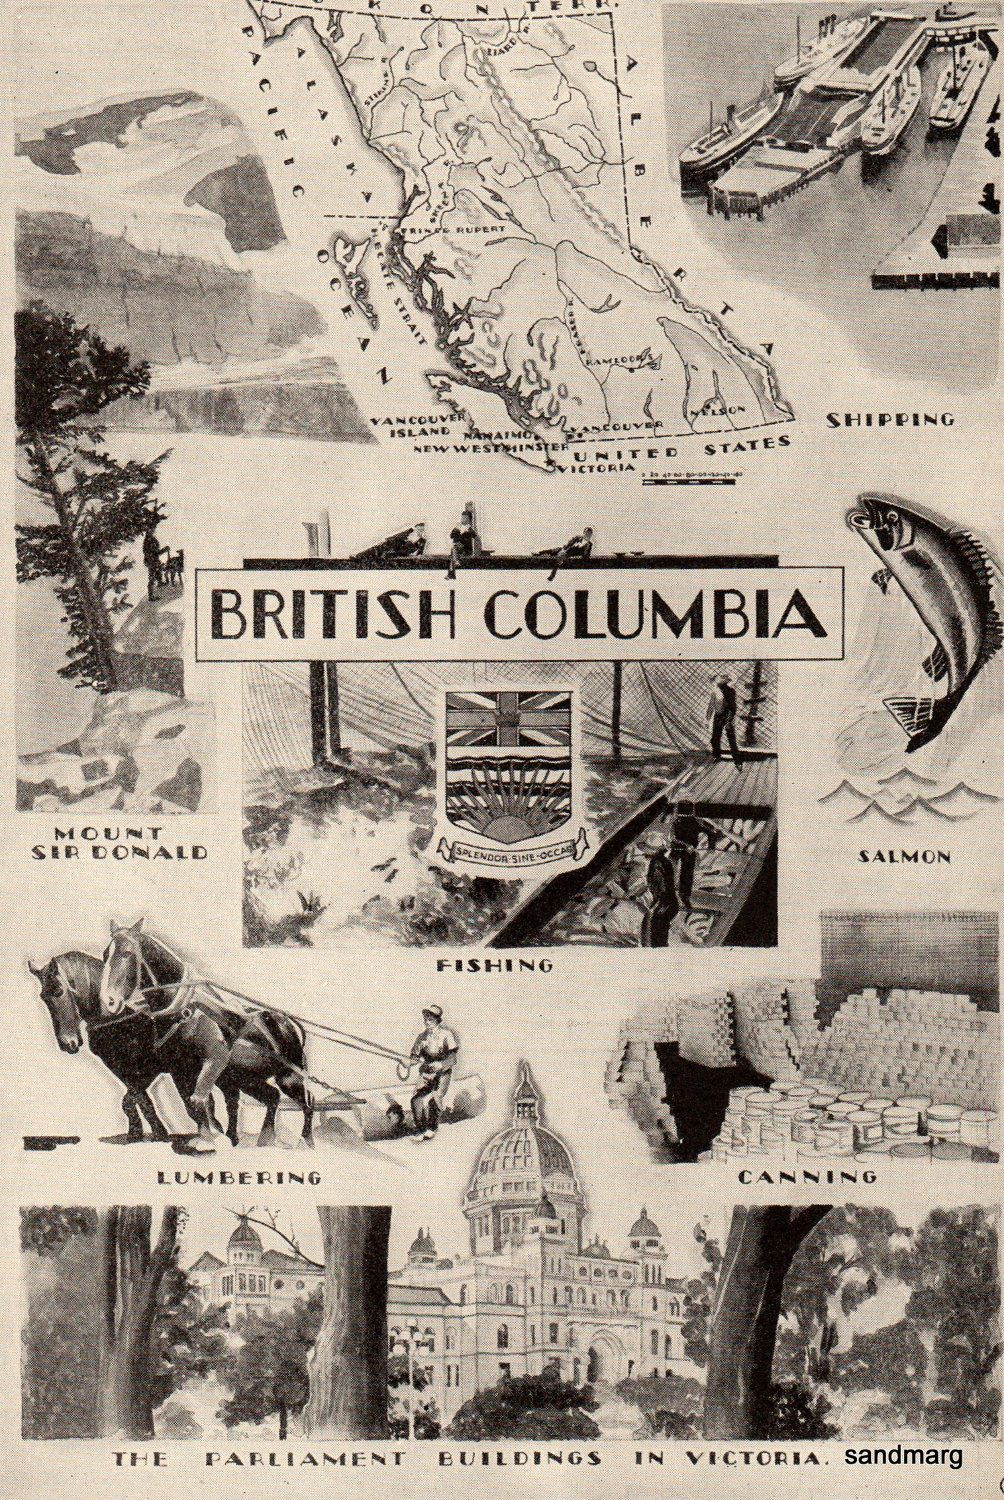 Vintage 1928 British Columbia Map and Illustration of